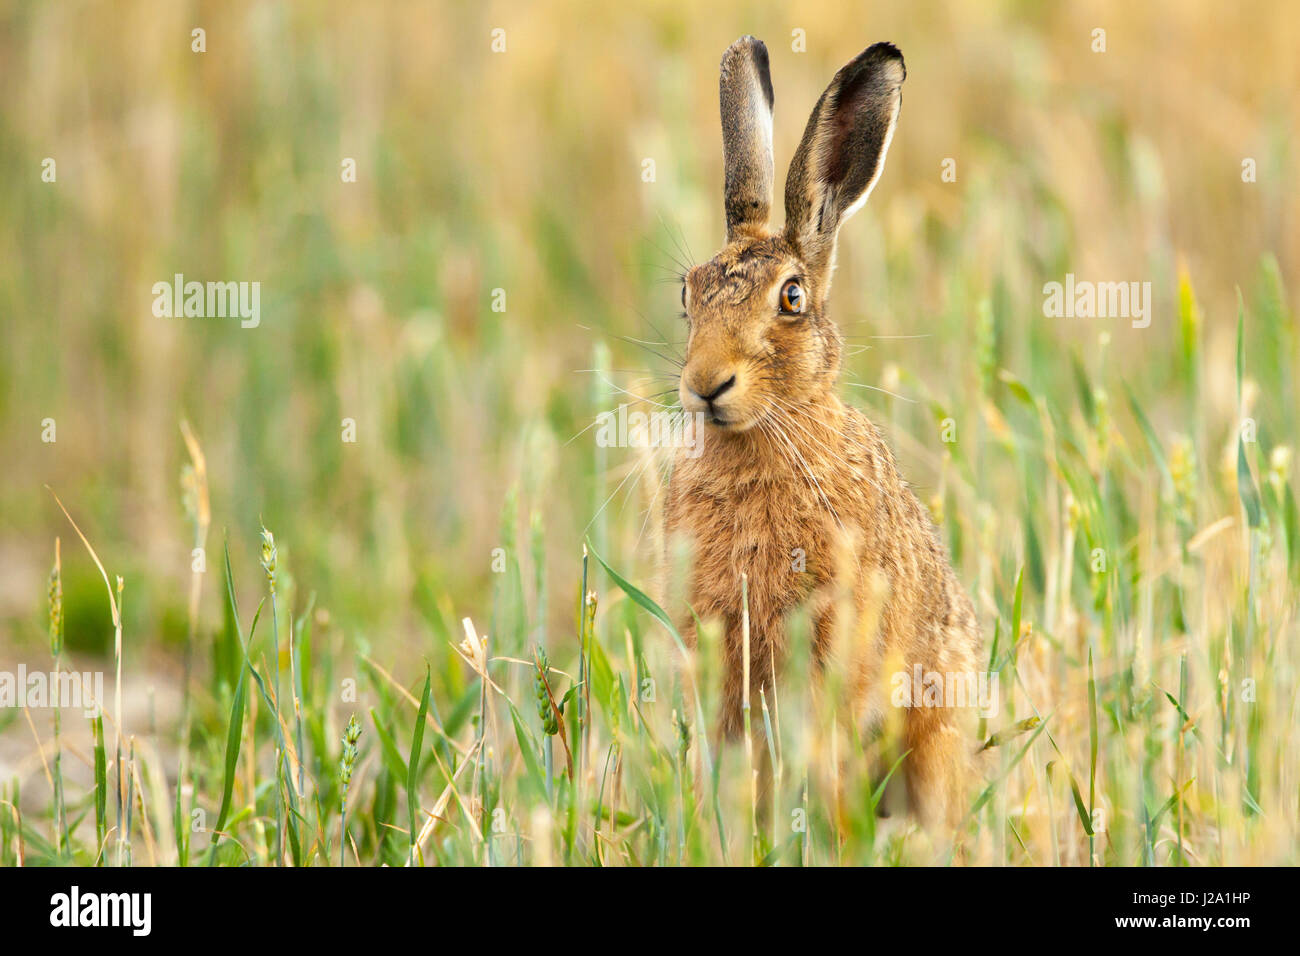 Brown Hare  adult sitting in wheat field  Powys, Wales, UK - Stock Image